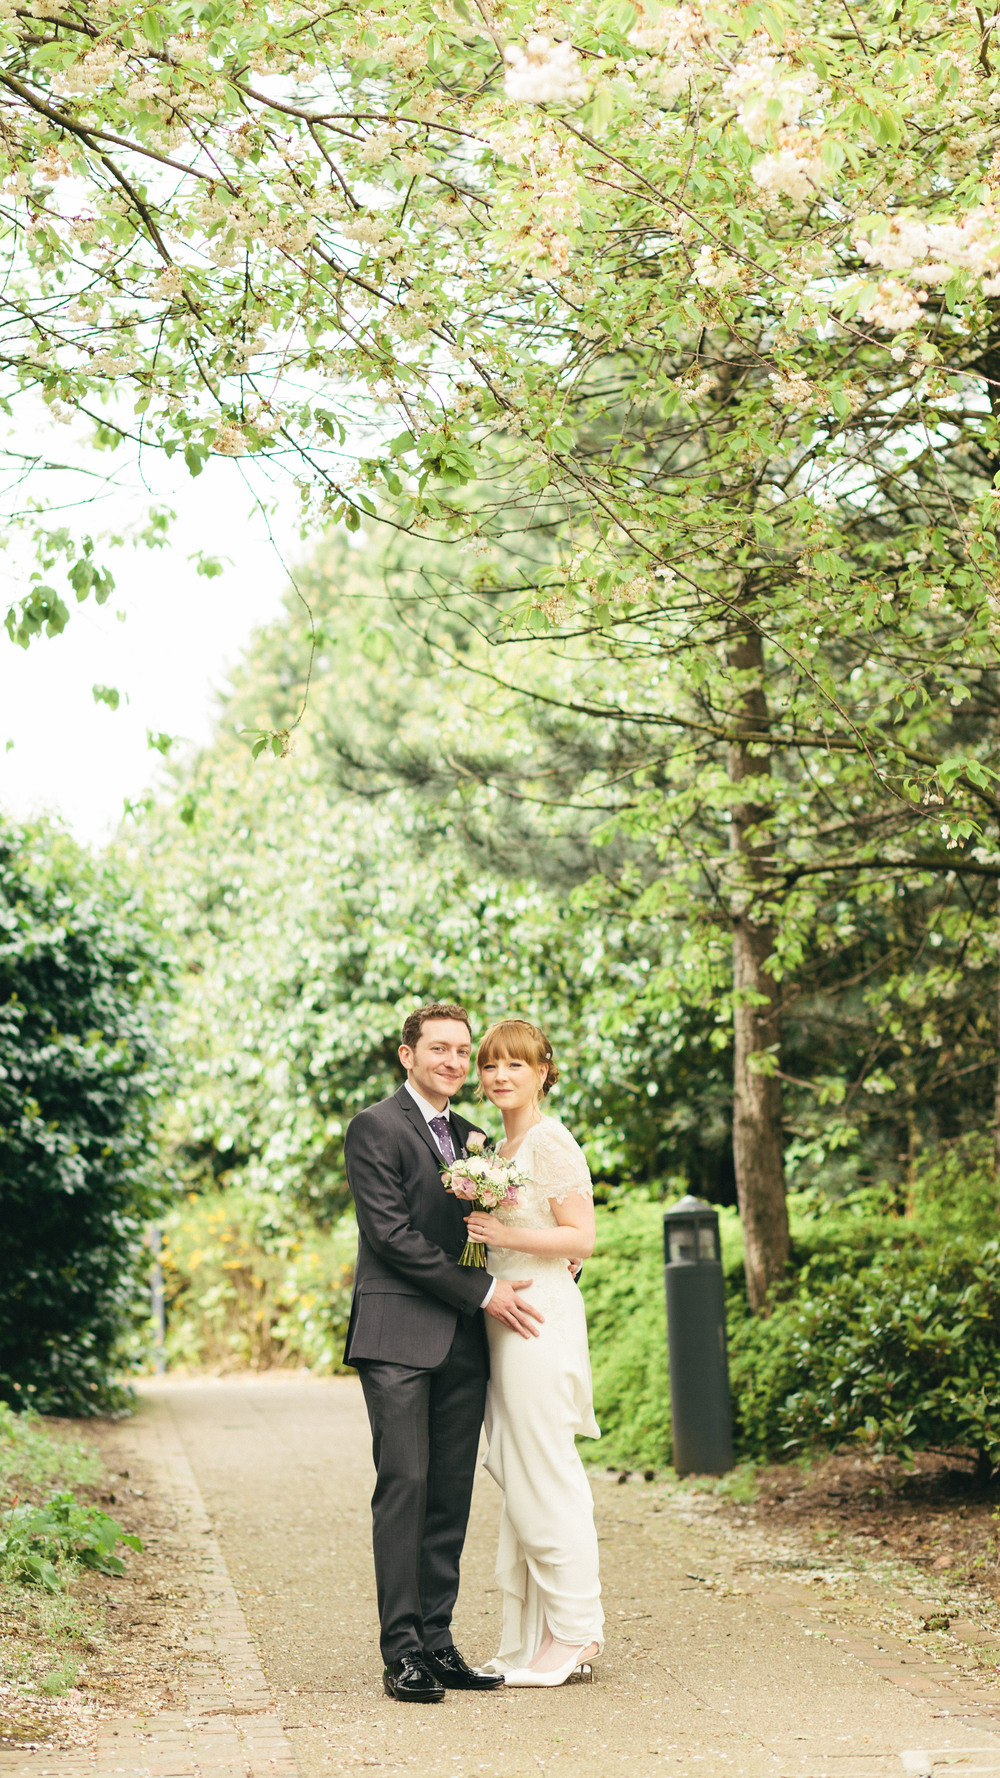 Newcastle Wedding Photographer Katy & Chris Sneak Peek